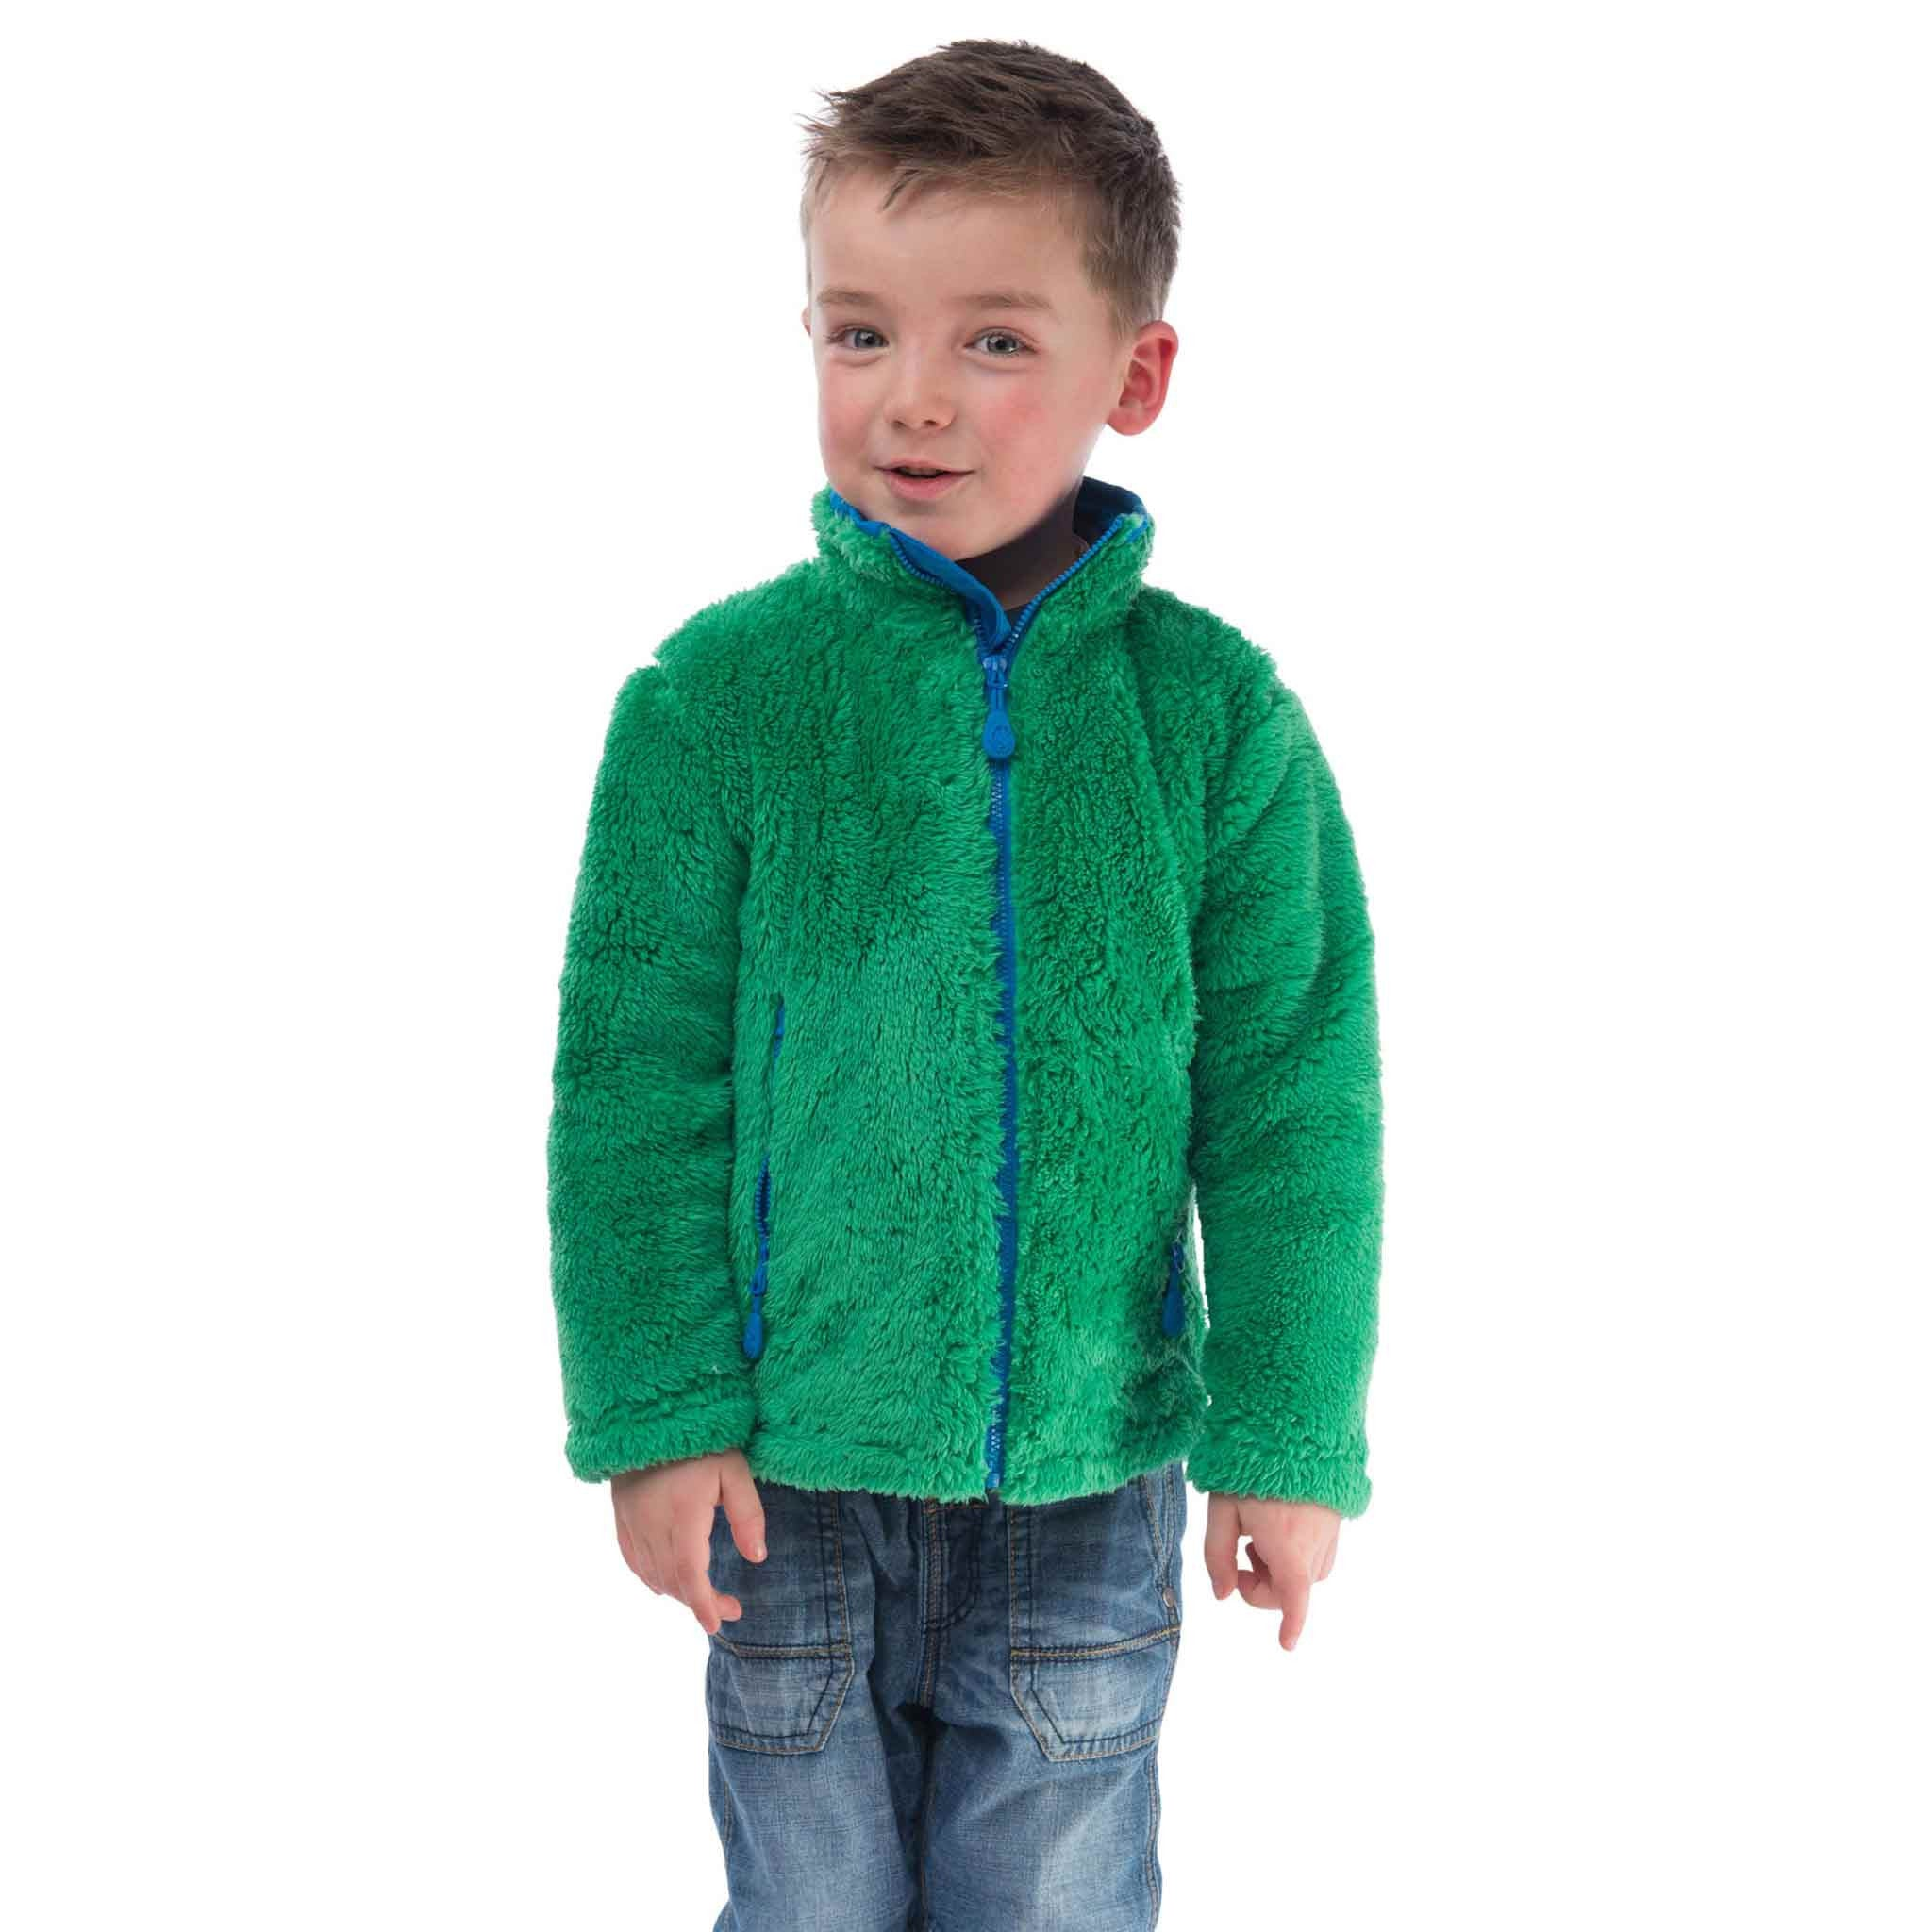 Radar Boys Zip Through Sweatshirt in Pea Green, Modelled Front View | Lighthouse